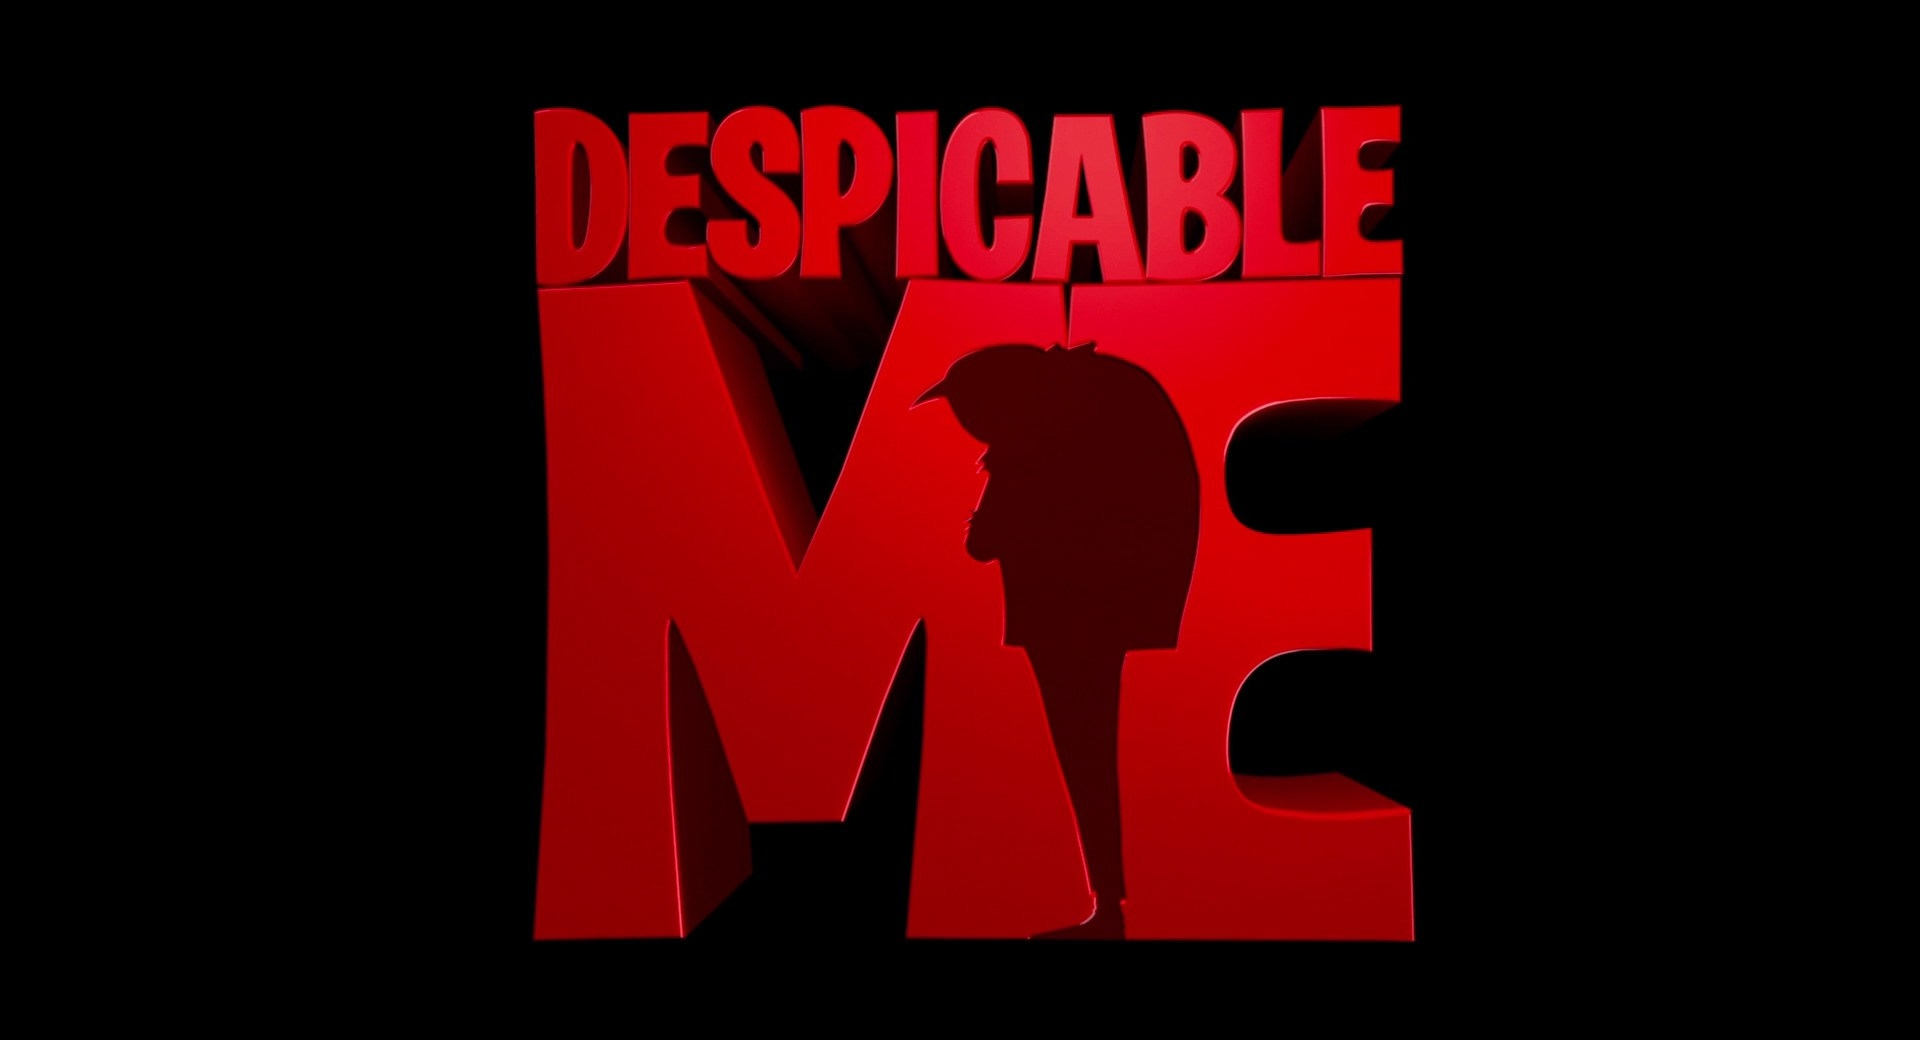 Despicable Me (Svenska) (@habibagreen) Cover Image